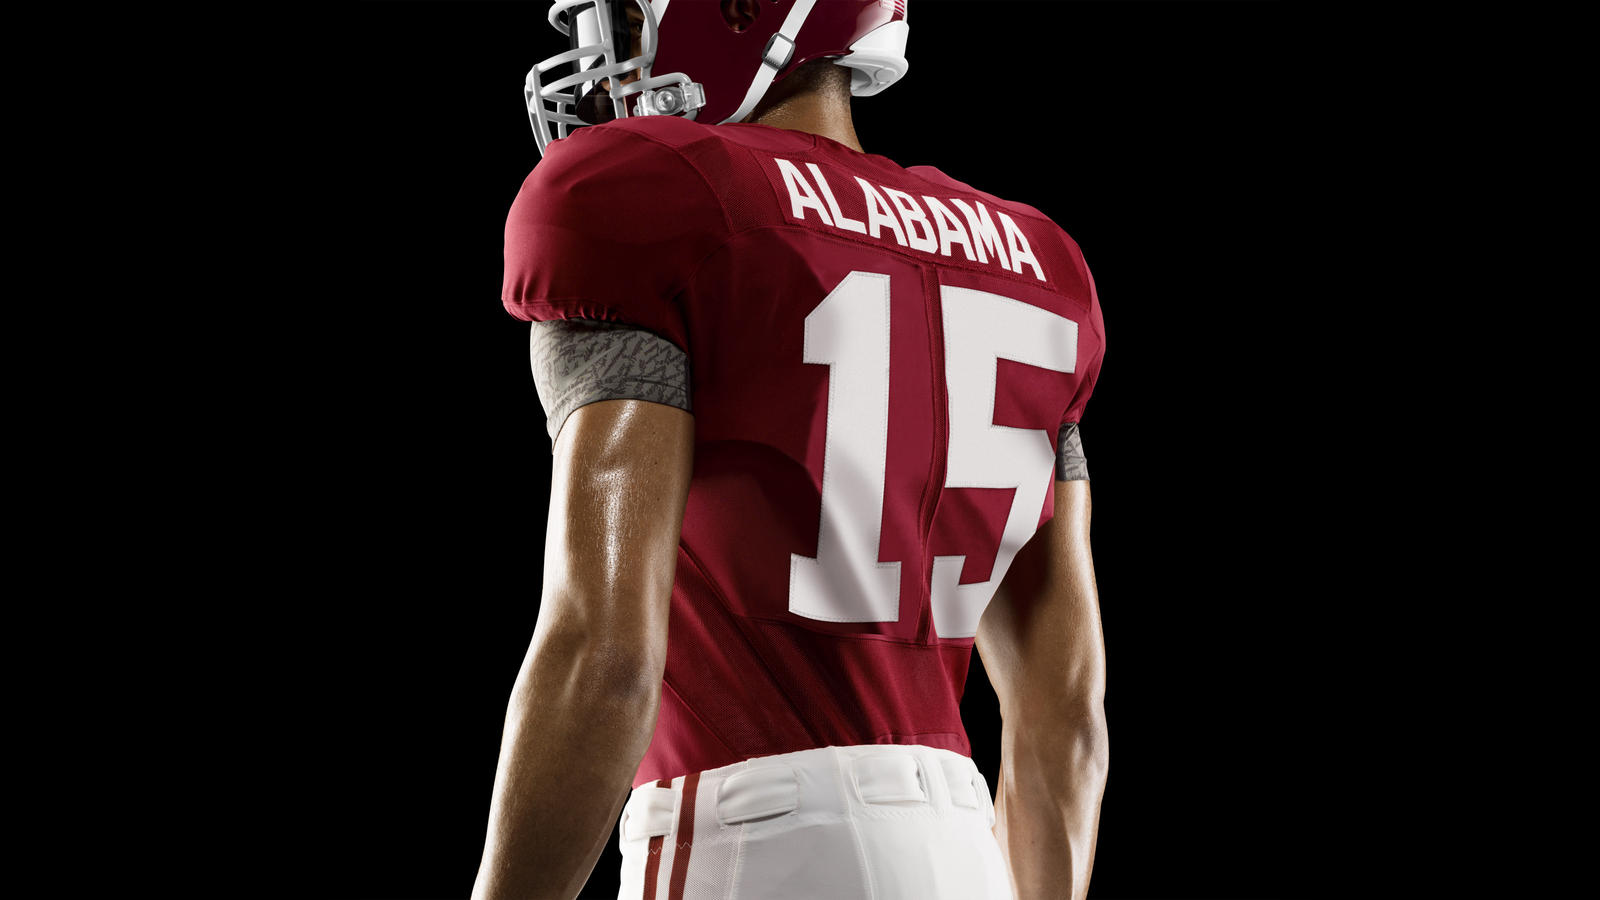 HO14_NFB_NCAA_Alabama_Uniform_827